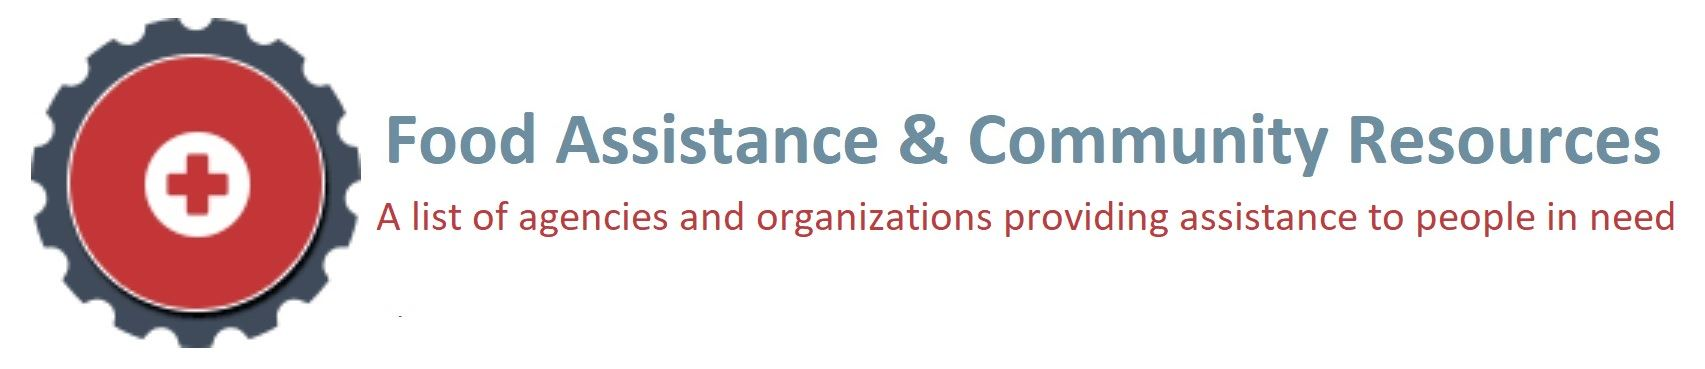 An image linking to information about community resources available in light of COVID-19.